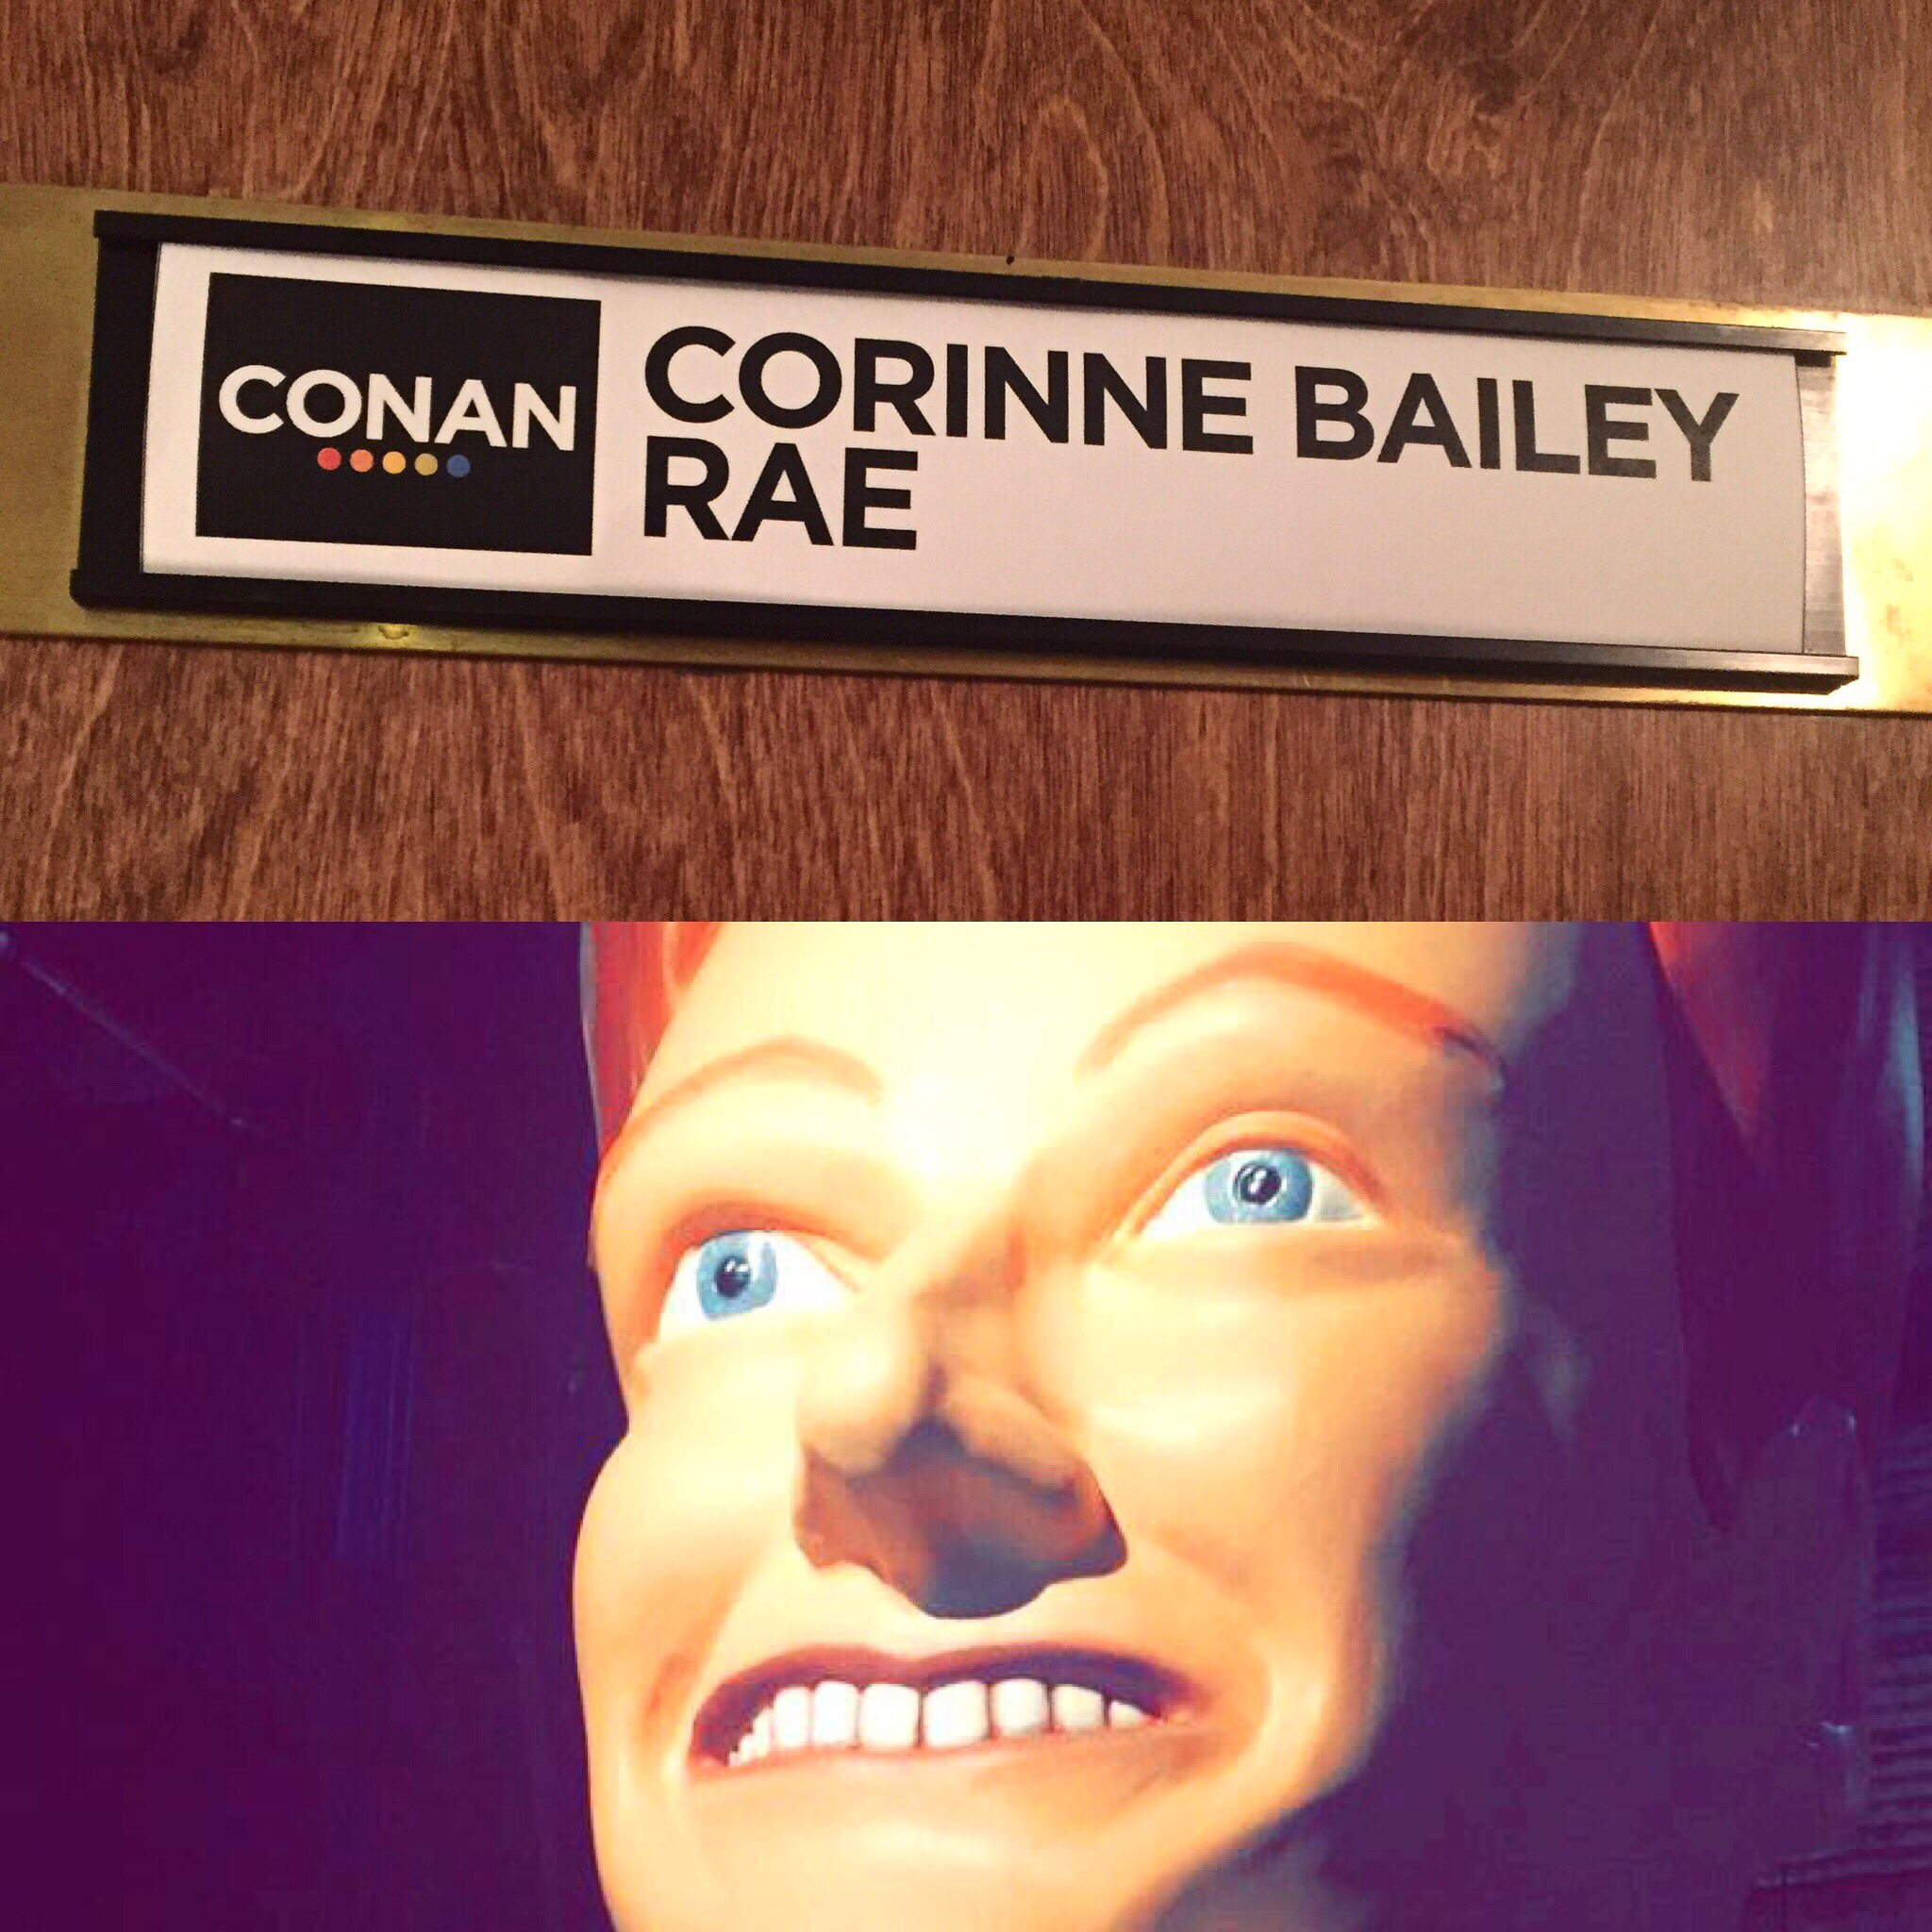 Looking forward to performing at @TeamCoco and seeing his crazy hair! 😁 Tune in tonight at 11/10c! #Conan https://t.co/D2vRZql2Nt